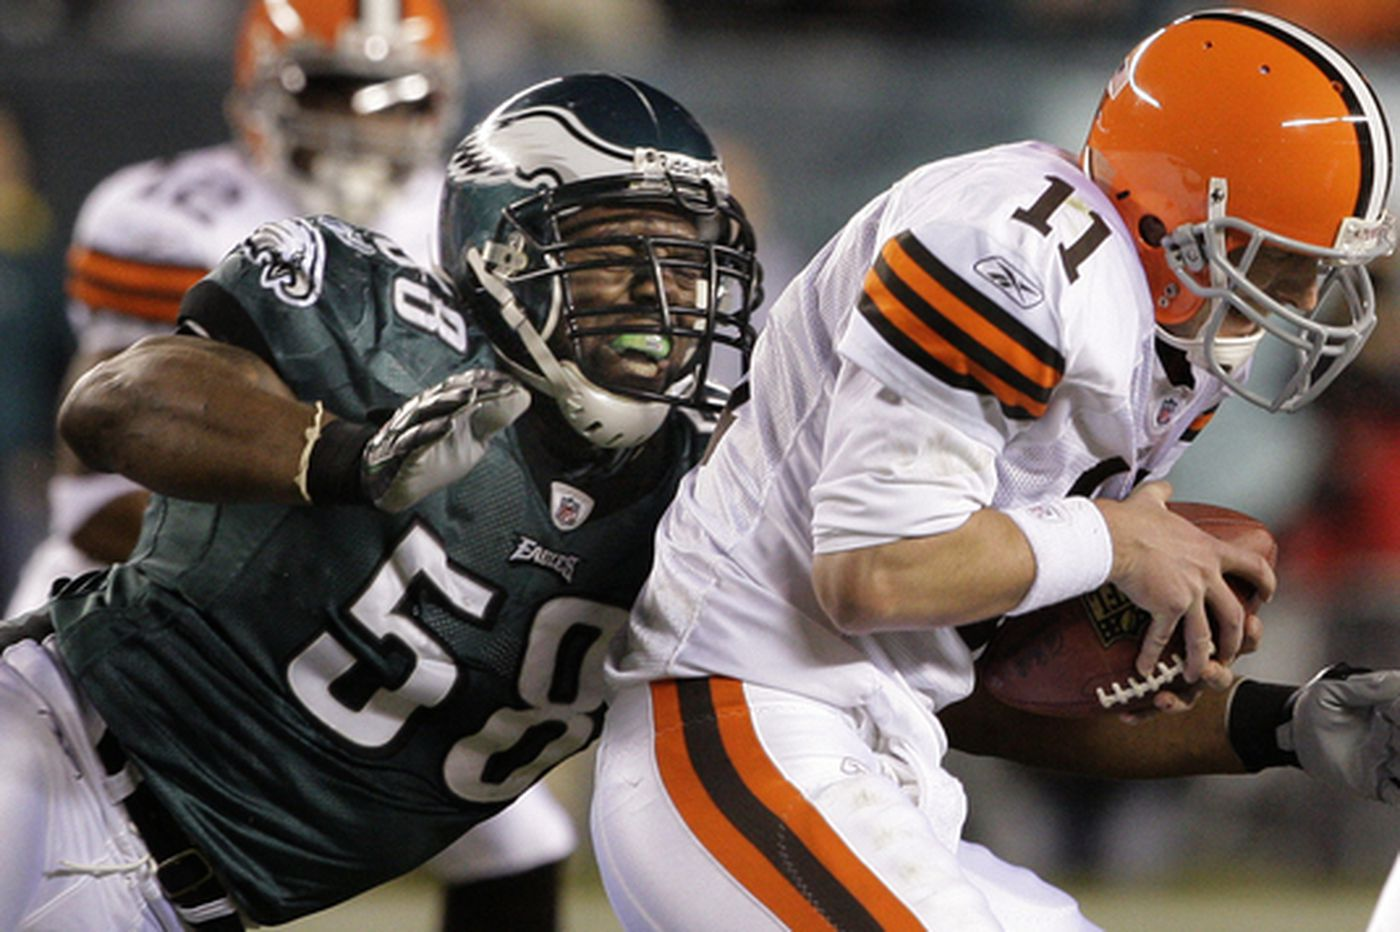 Payback time for Eagles in rematch with division foe Redskins